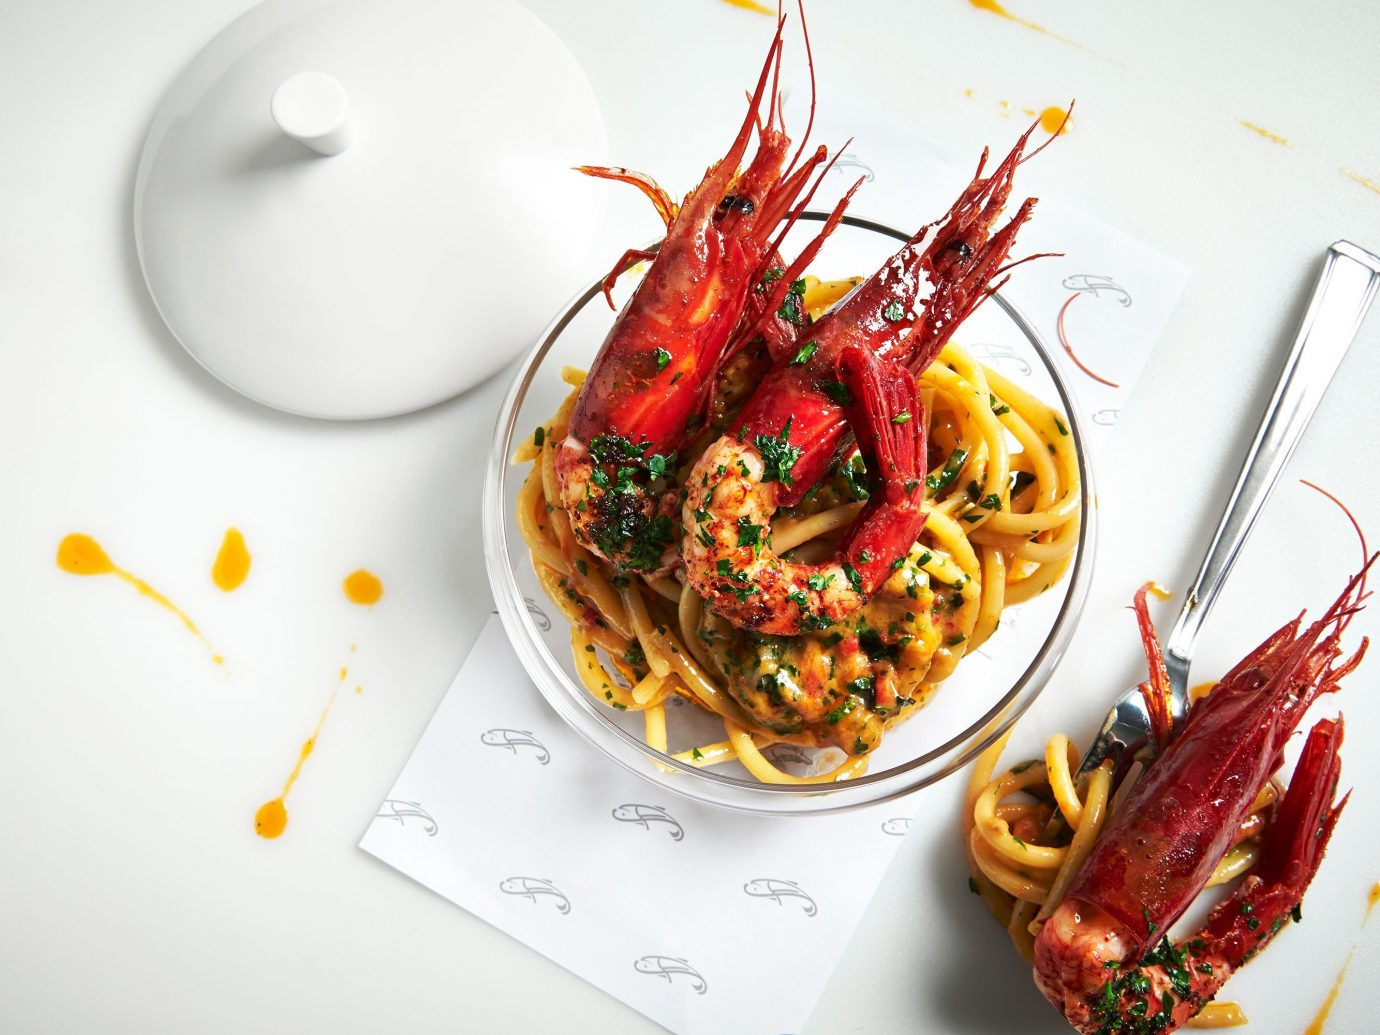 Food + Drink food plate dish cuisine meal produce spaghetti vegetable sense Seafood italian food european food crayfish arranged piece de resistance